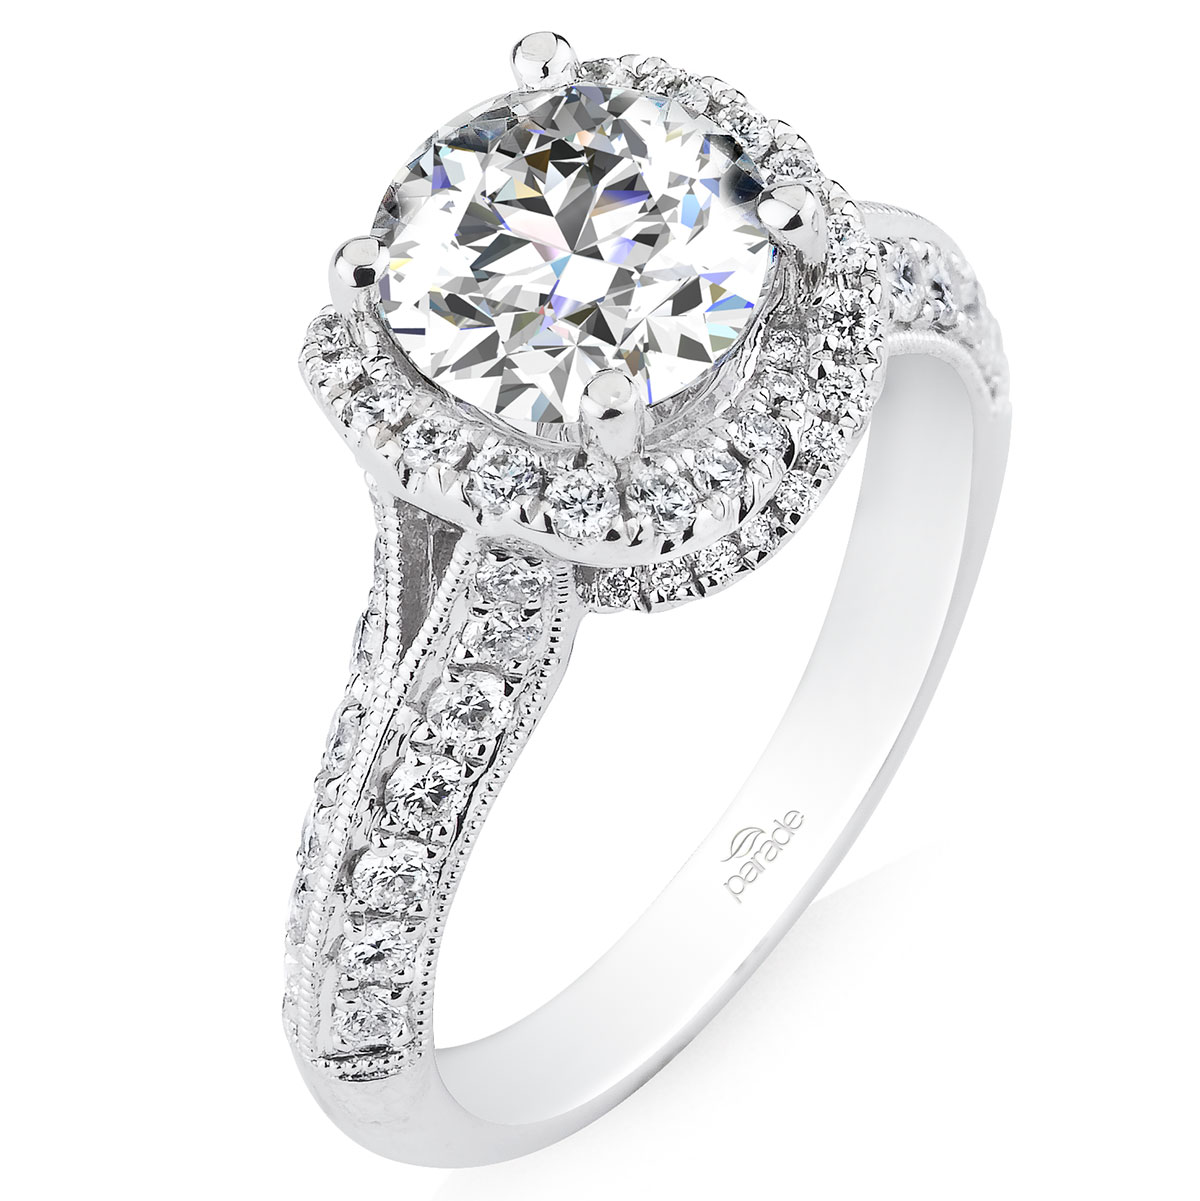 Quick View Parade Overlapping Circle Diamond Ring176866